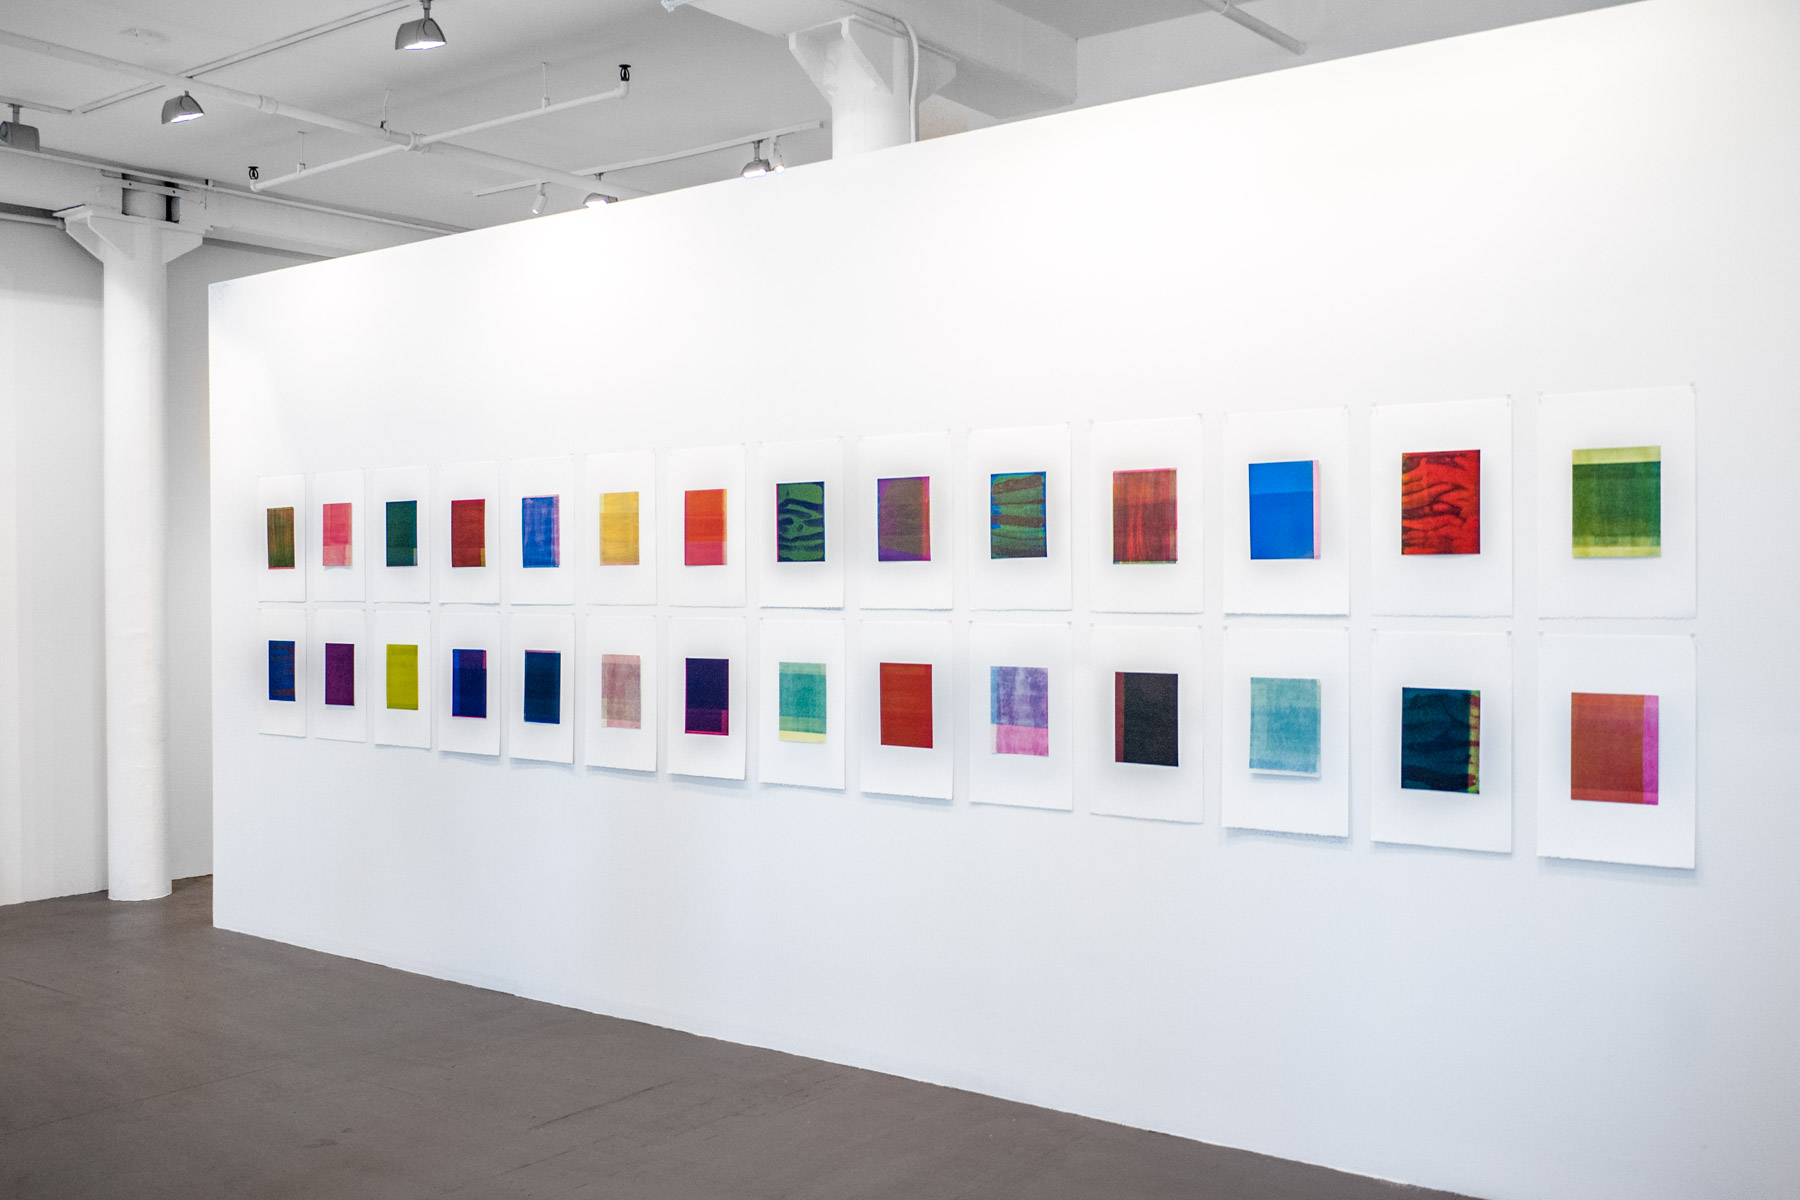 installation view of works by Richard Tsao